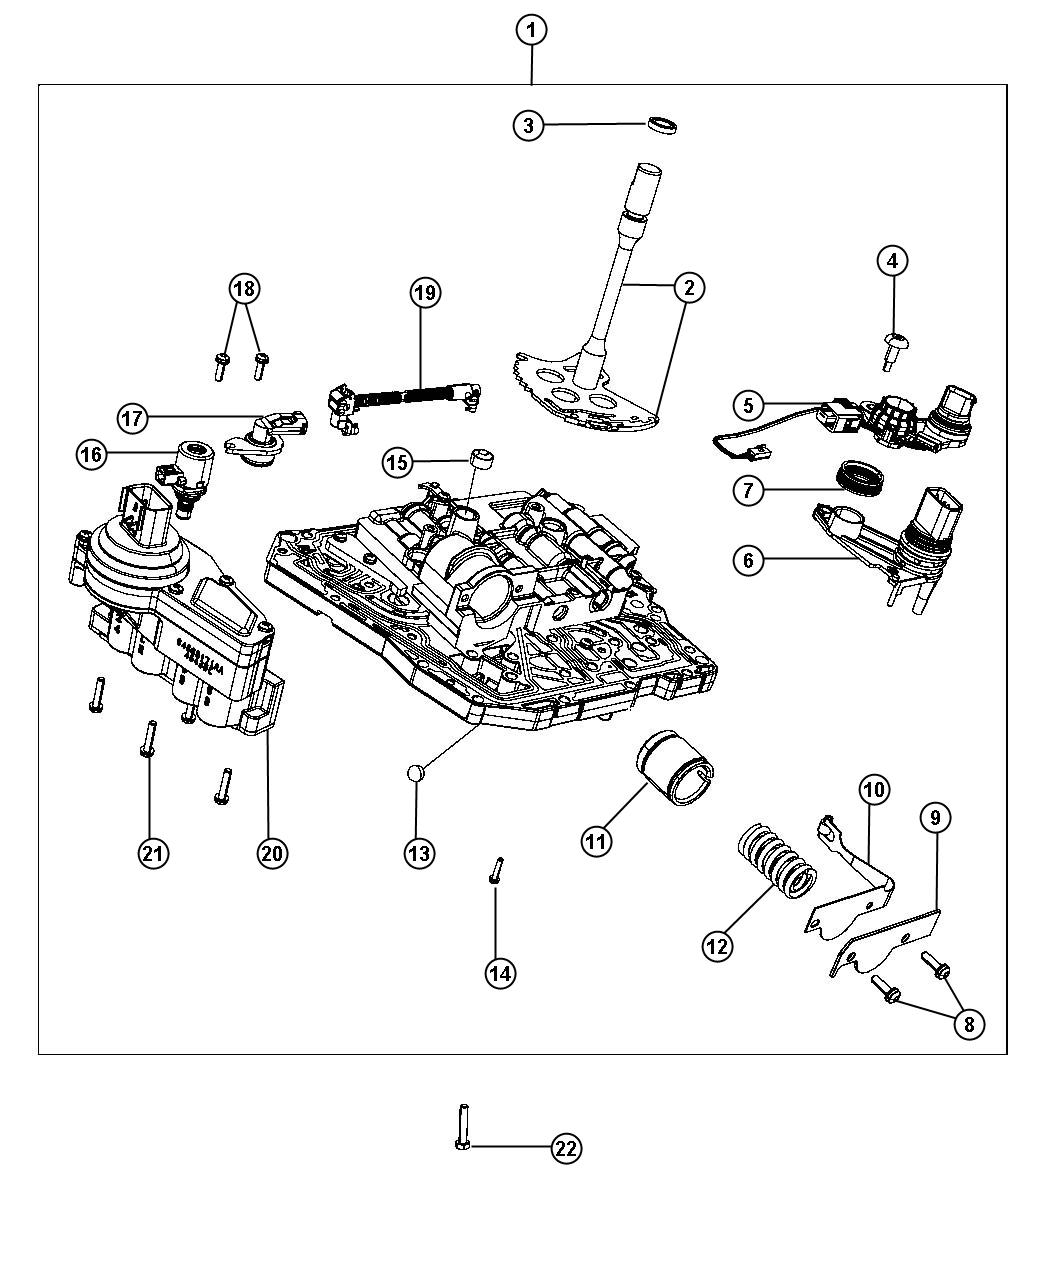 2002 jeep liberty factory service manual